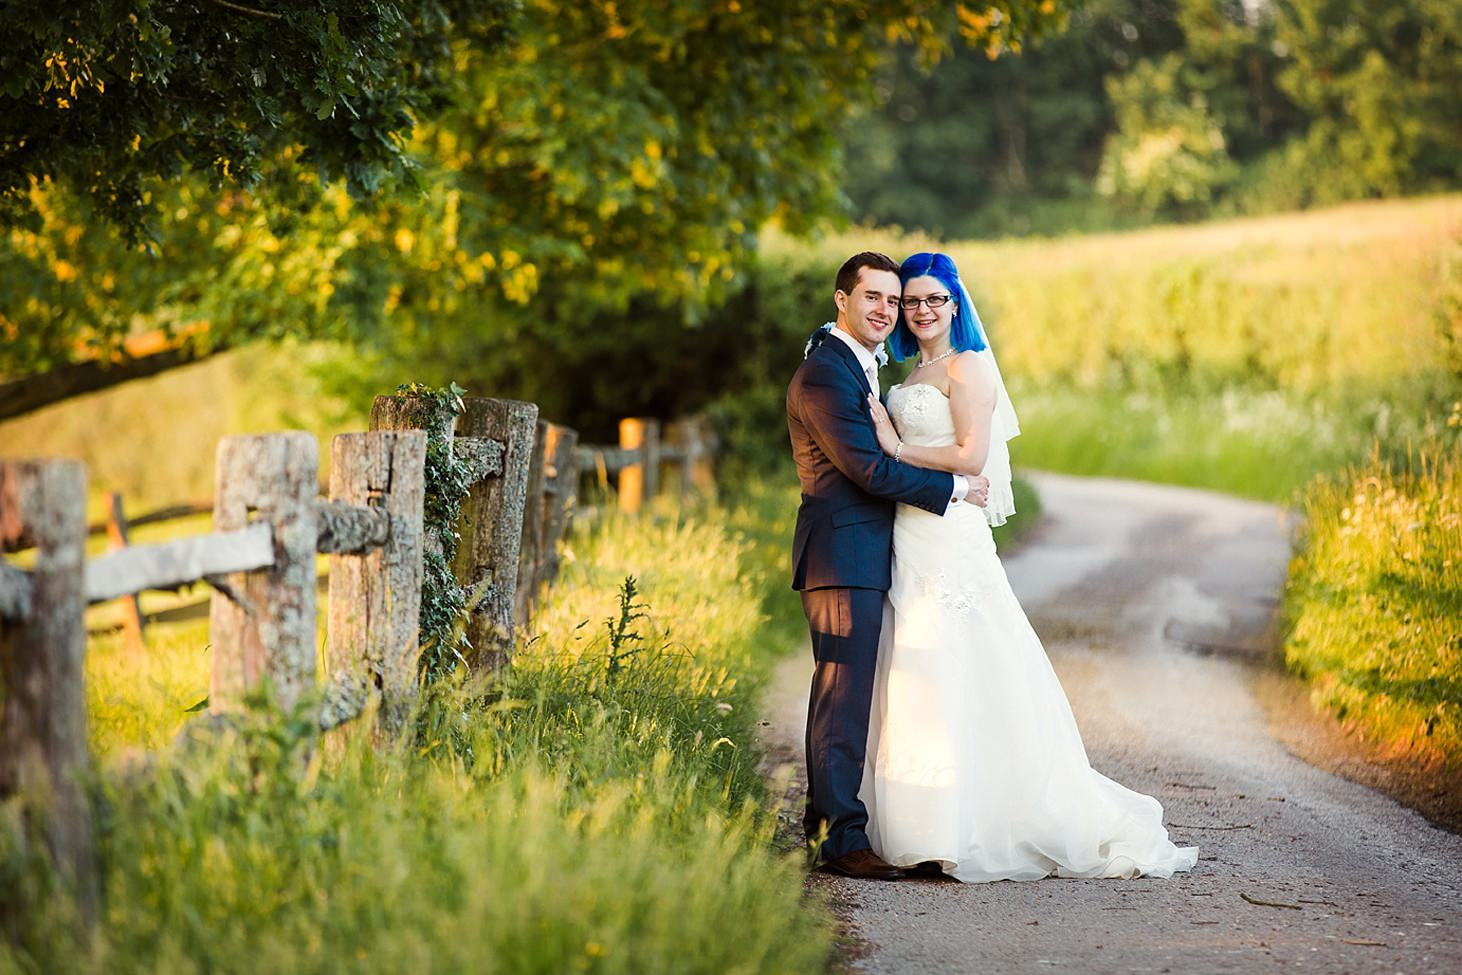 gate street barn wedding photography bride and groom portrait by gates